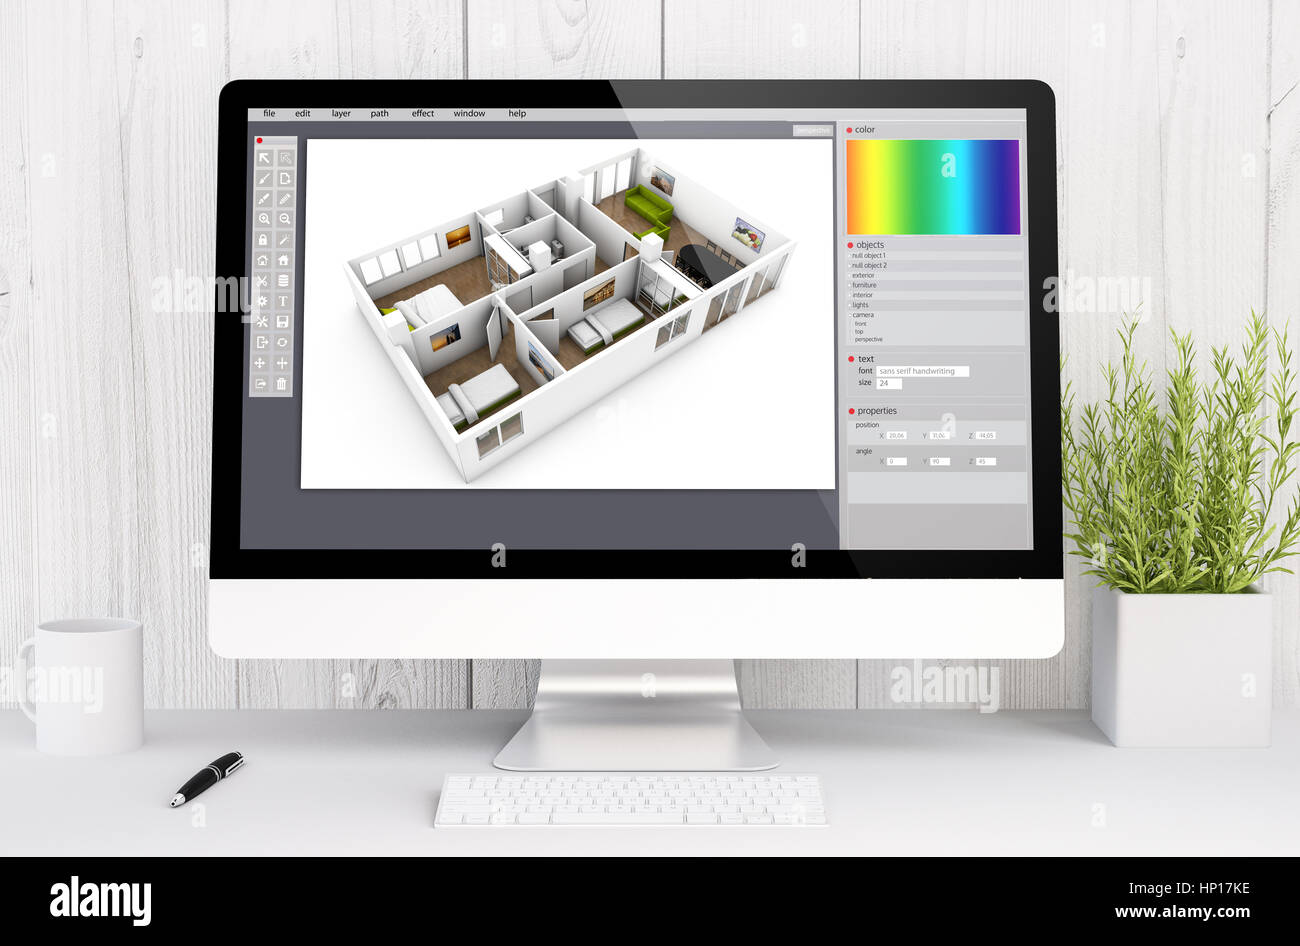 Design Drawing Table Desk 3d Stockfotos & Design Drawing Table Desk ...